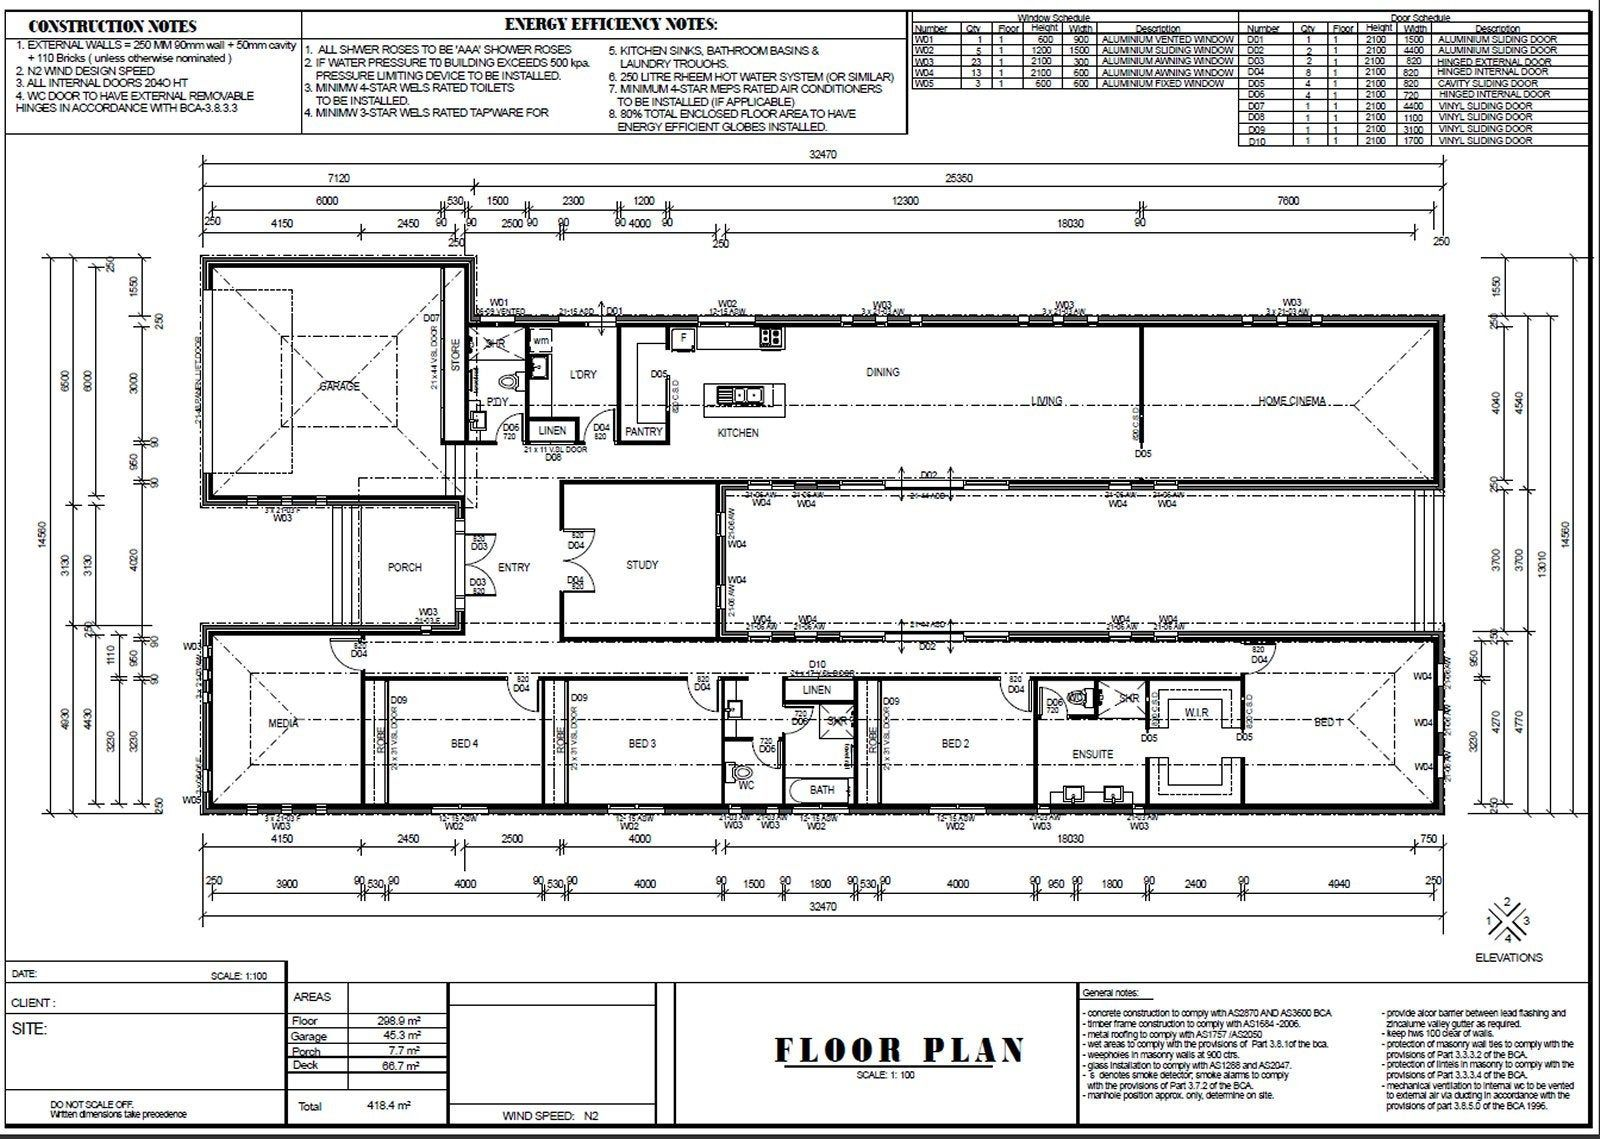 418m2 4503 Sq Foot 5 Bed Flat 4 Plus Study Home Design 5 Bed Home Home Plans Modern 5 Bedroom Home Plans Courtyard Home Small House Design Plans Container House Plans House Plans